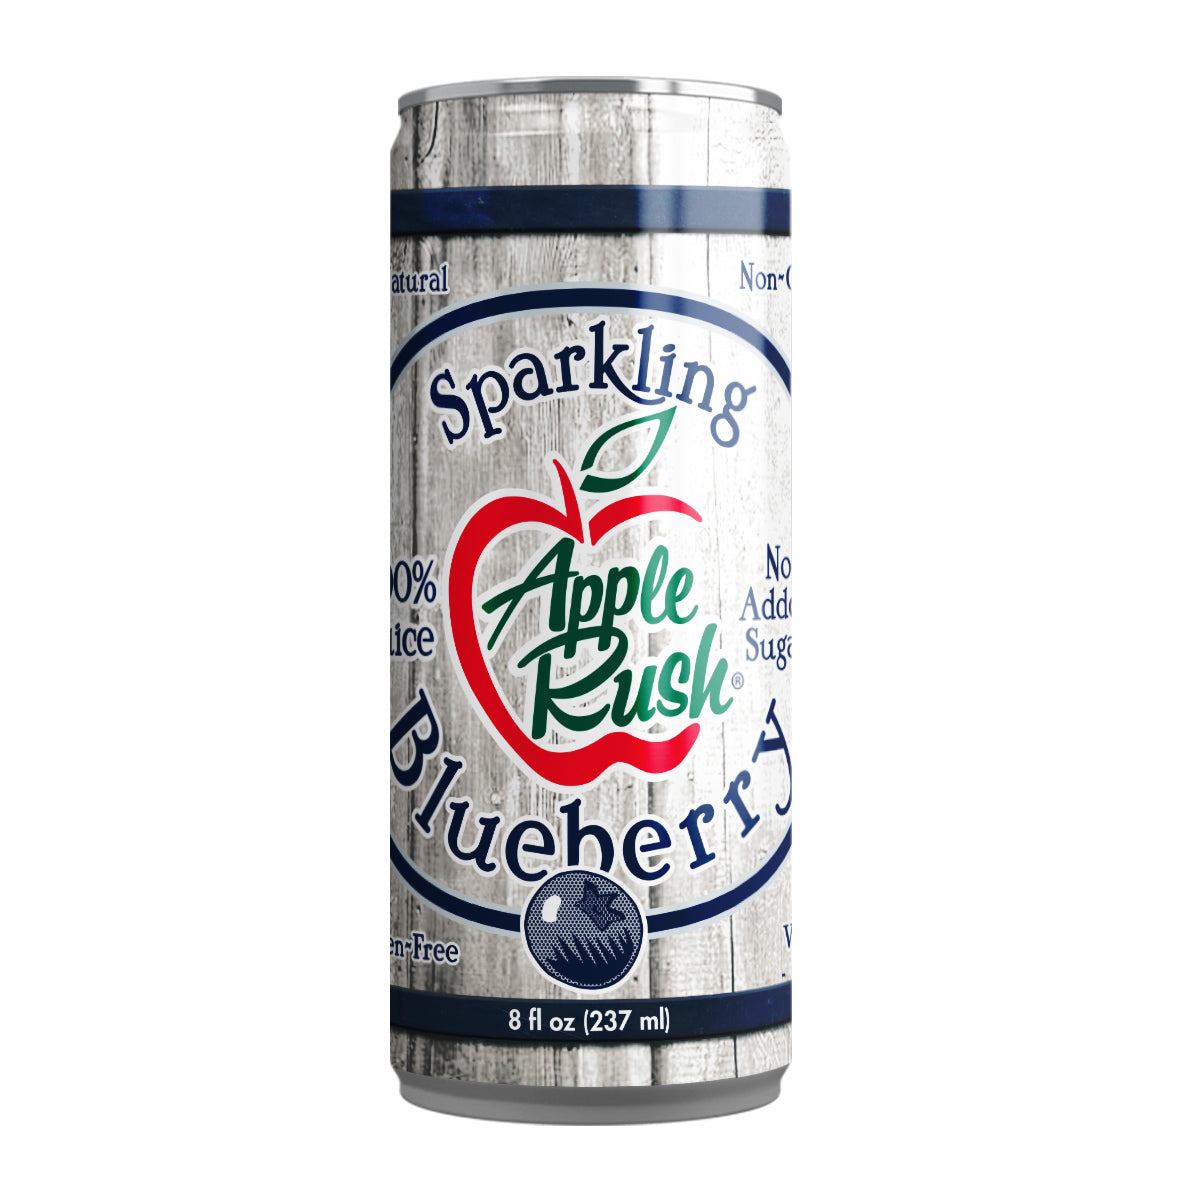 Apple Rush Sparkling Juice 100% - 8 oz can - Blueberry 24 Pack